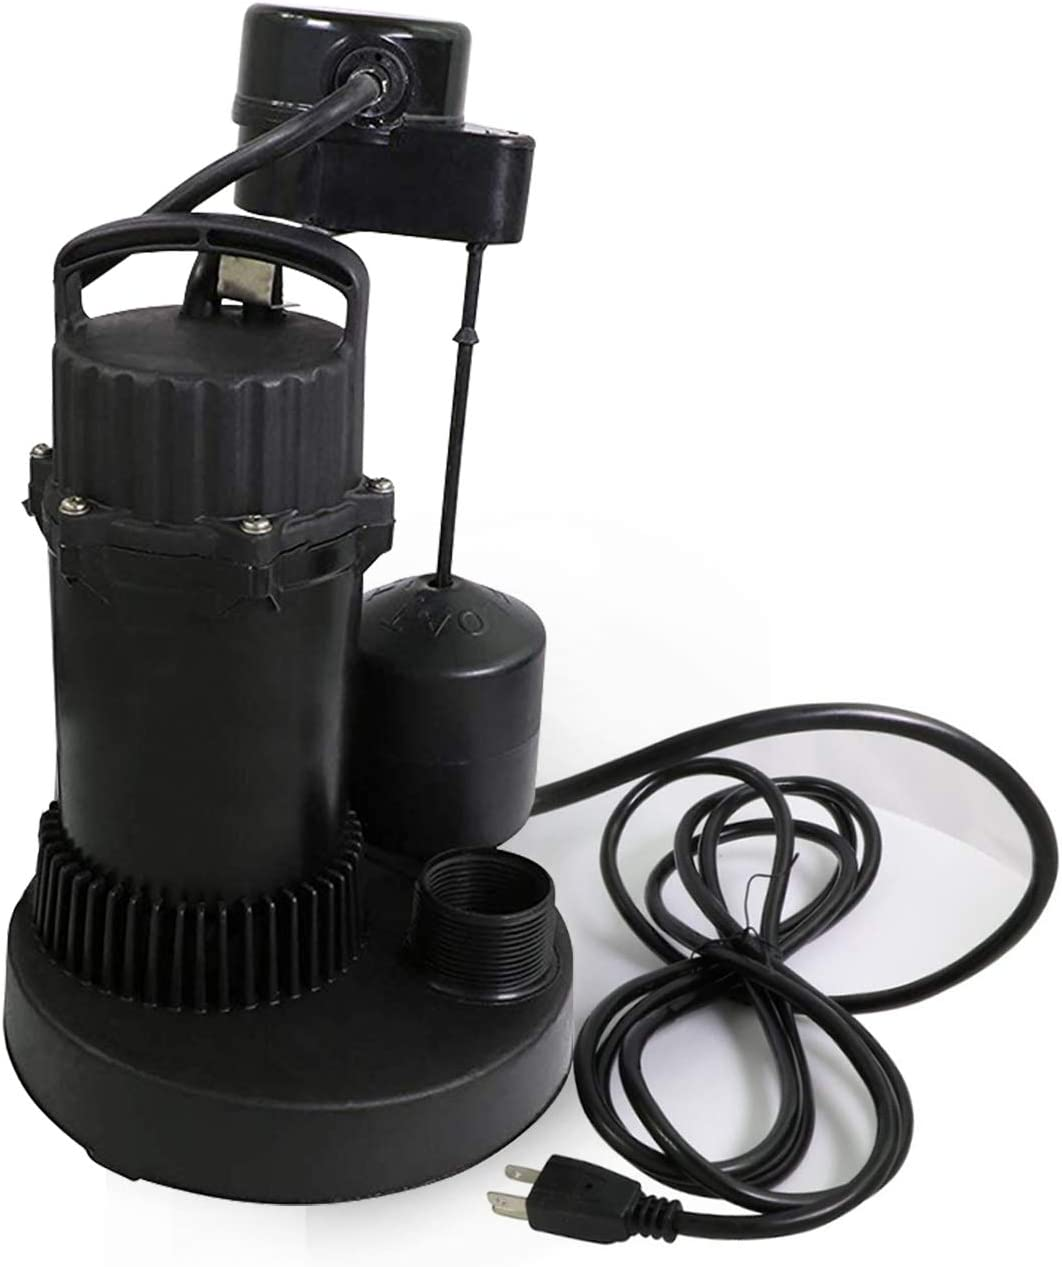 Supply Giant TQIQ12 Heavy Duty Sumbersible Sump Pump 1/2'' HP With Float Switch, Black